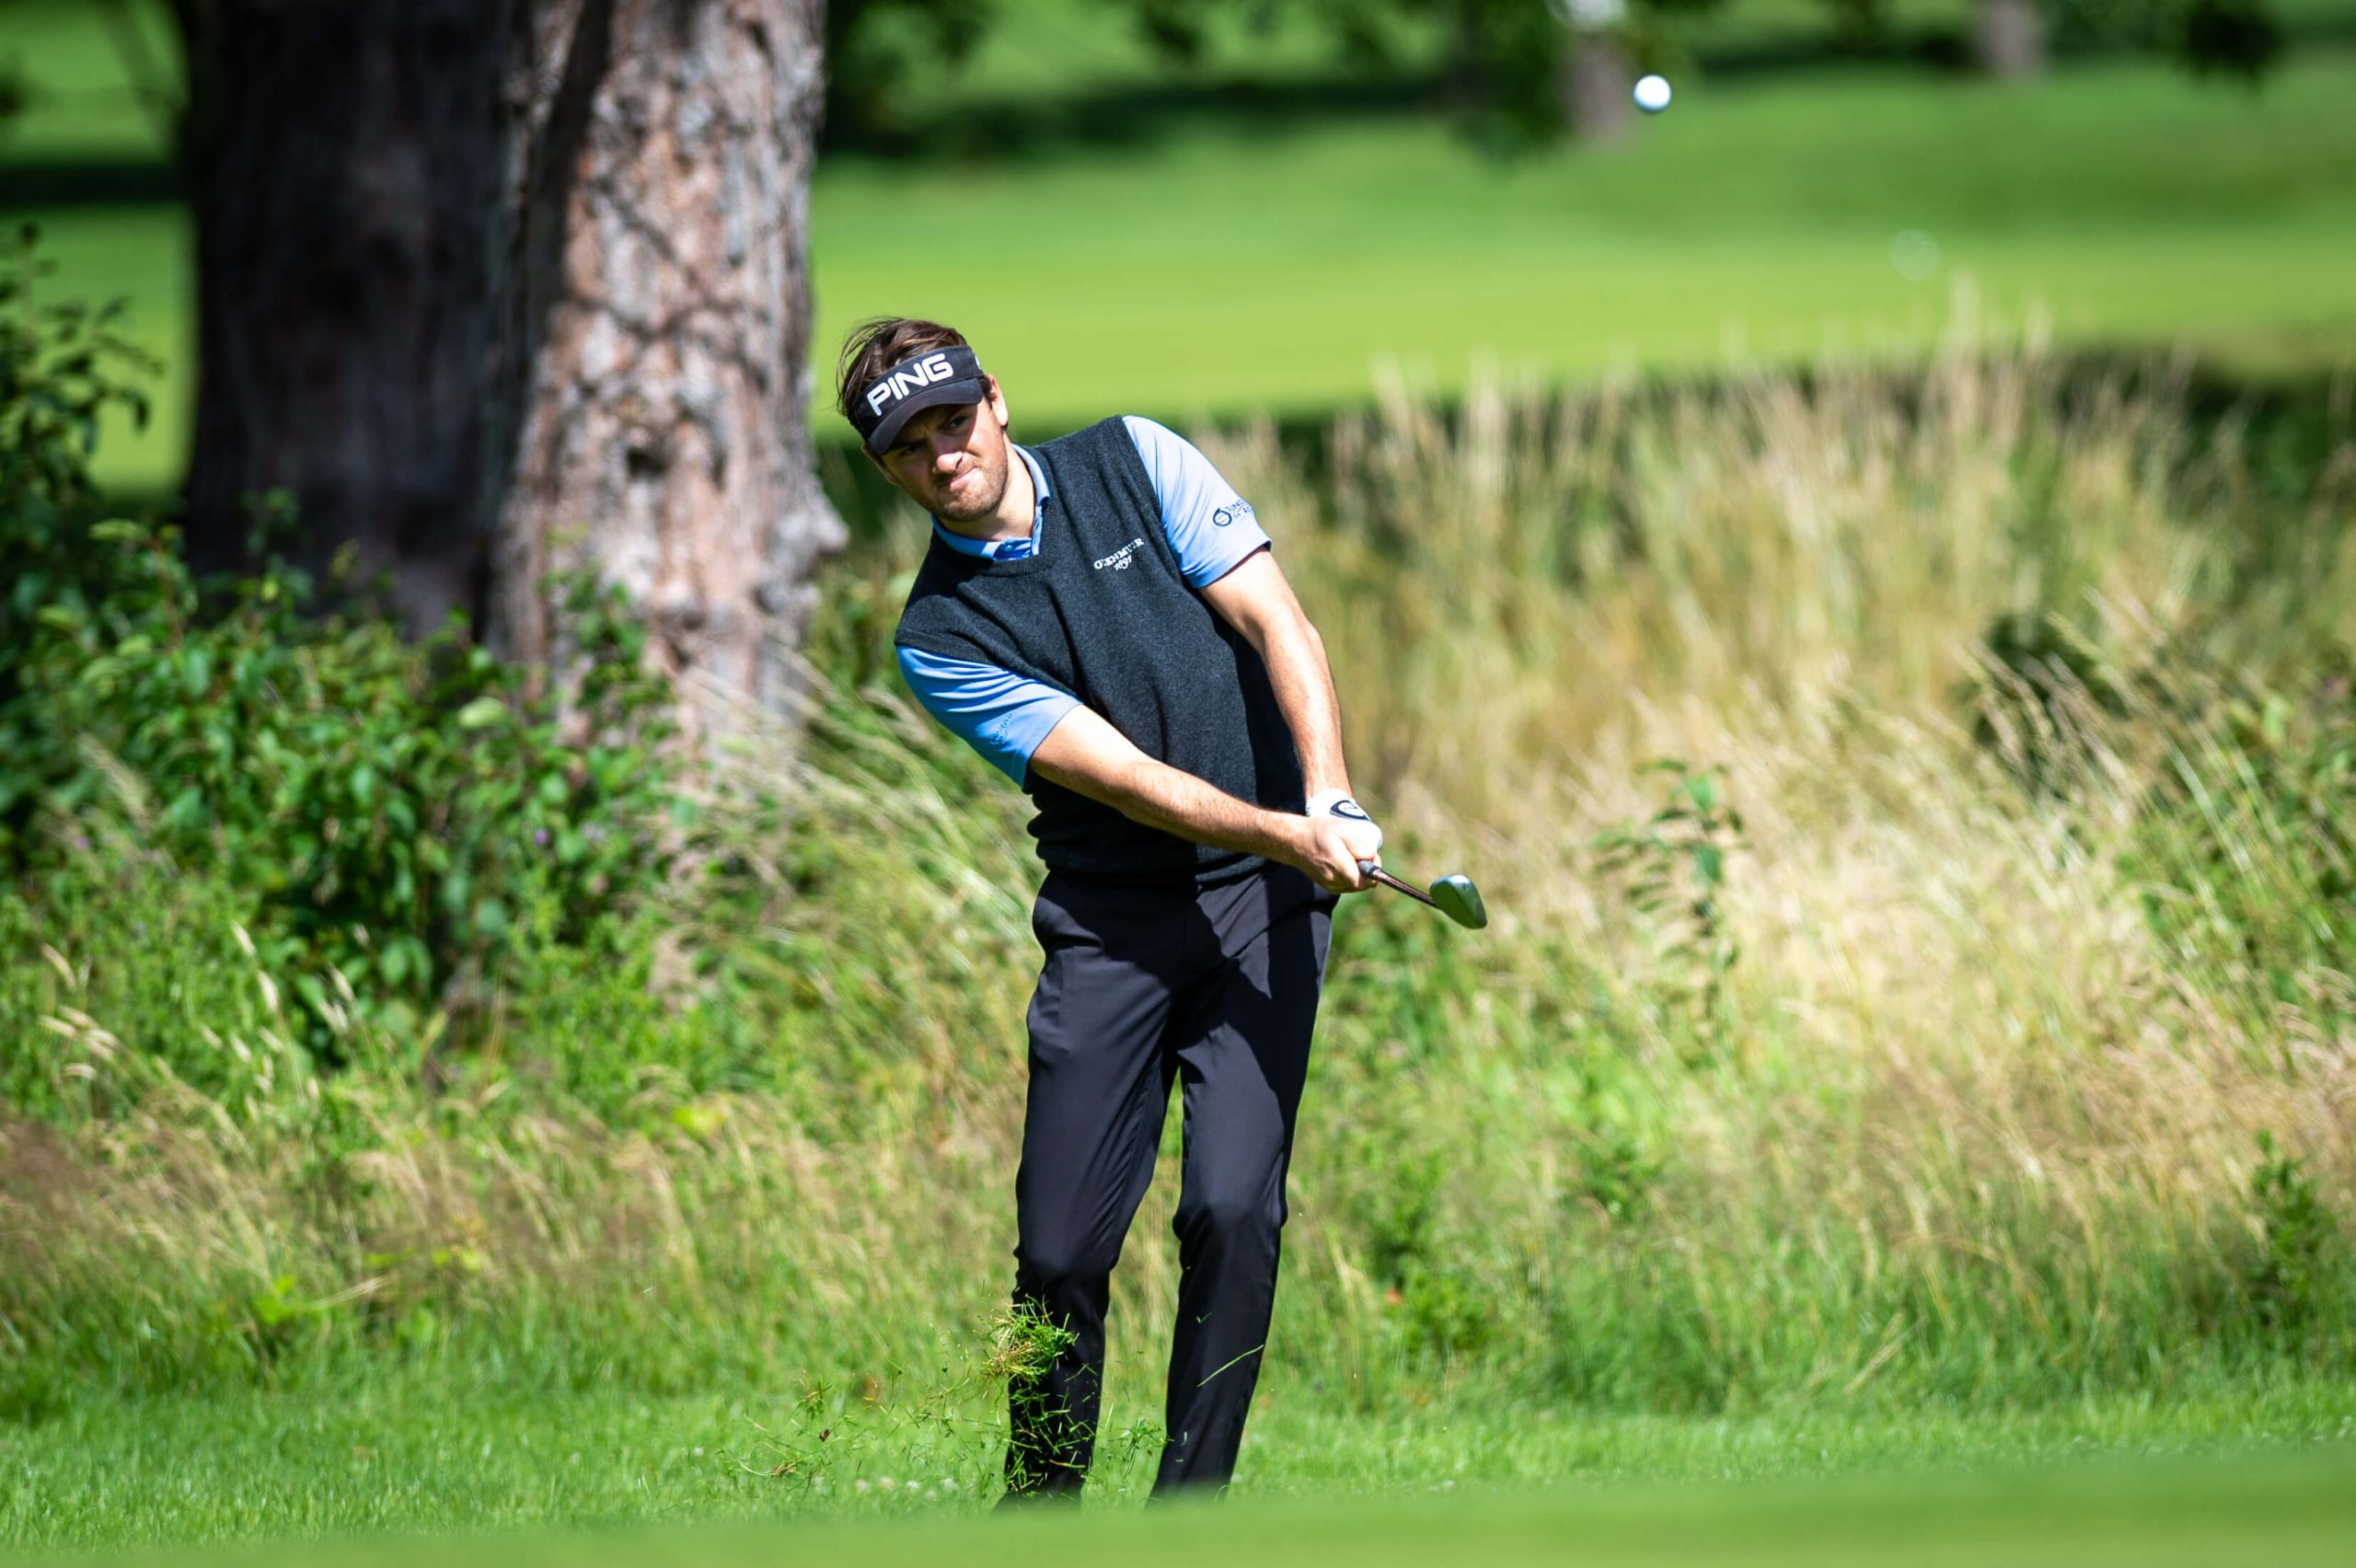 Golf Nutrition - How Can Supplements Support my Game?